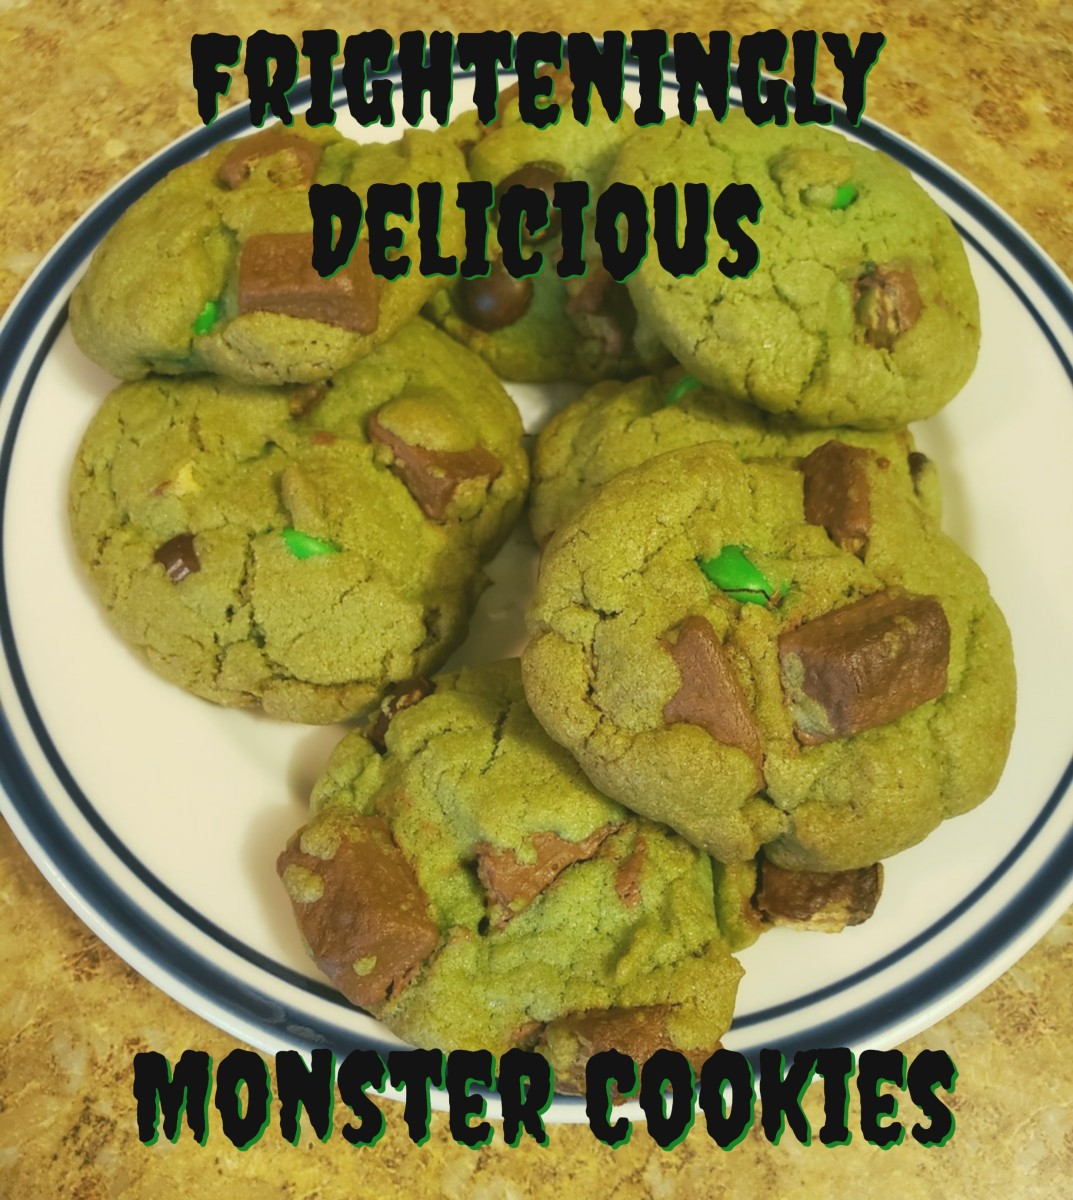 Frighteningly Delicious Monster Cookies